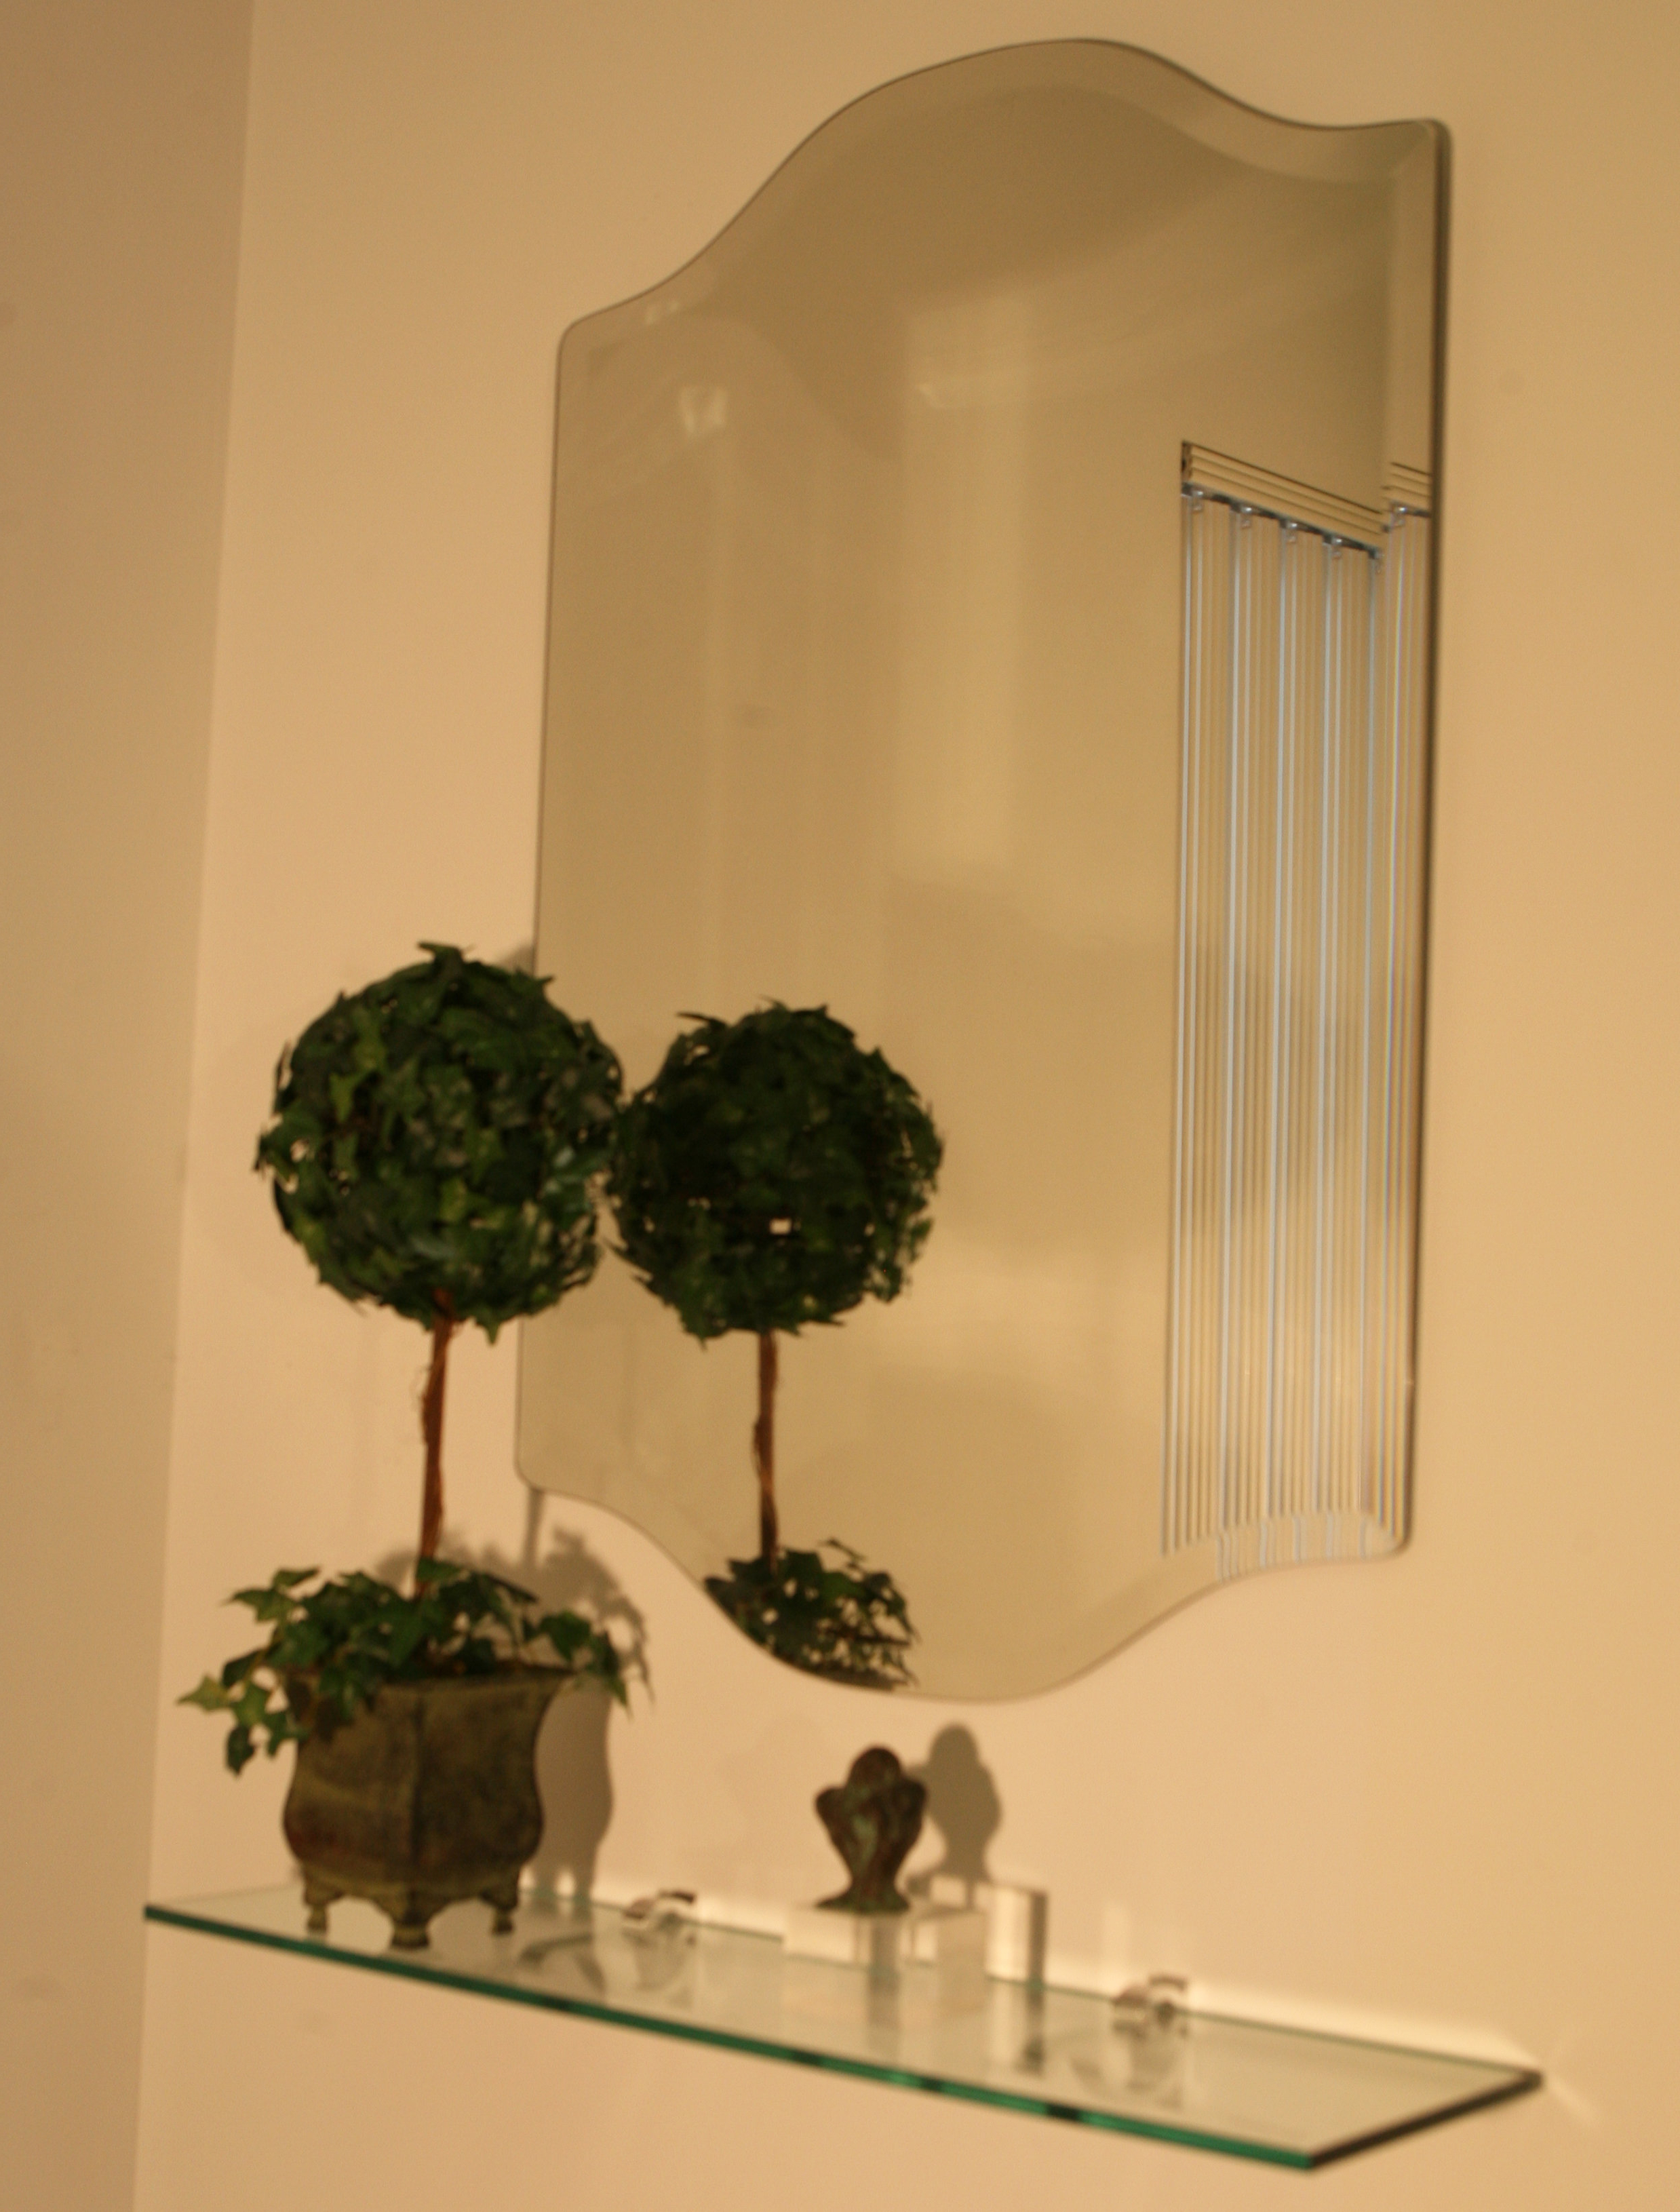 Egor Accent Mirror Regarding Popular Morlan Accent Mirrors (View 15 of 20)